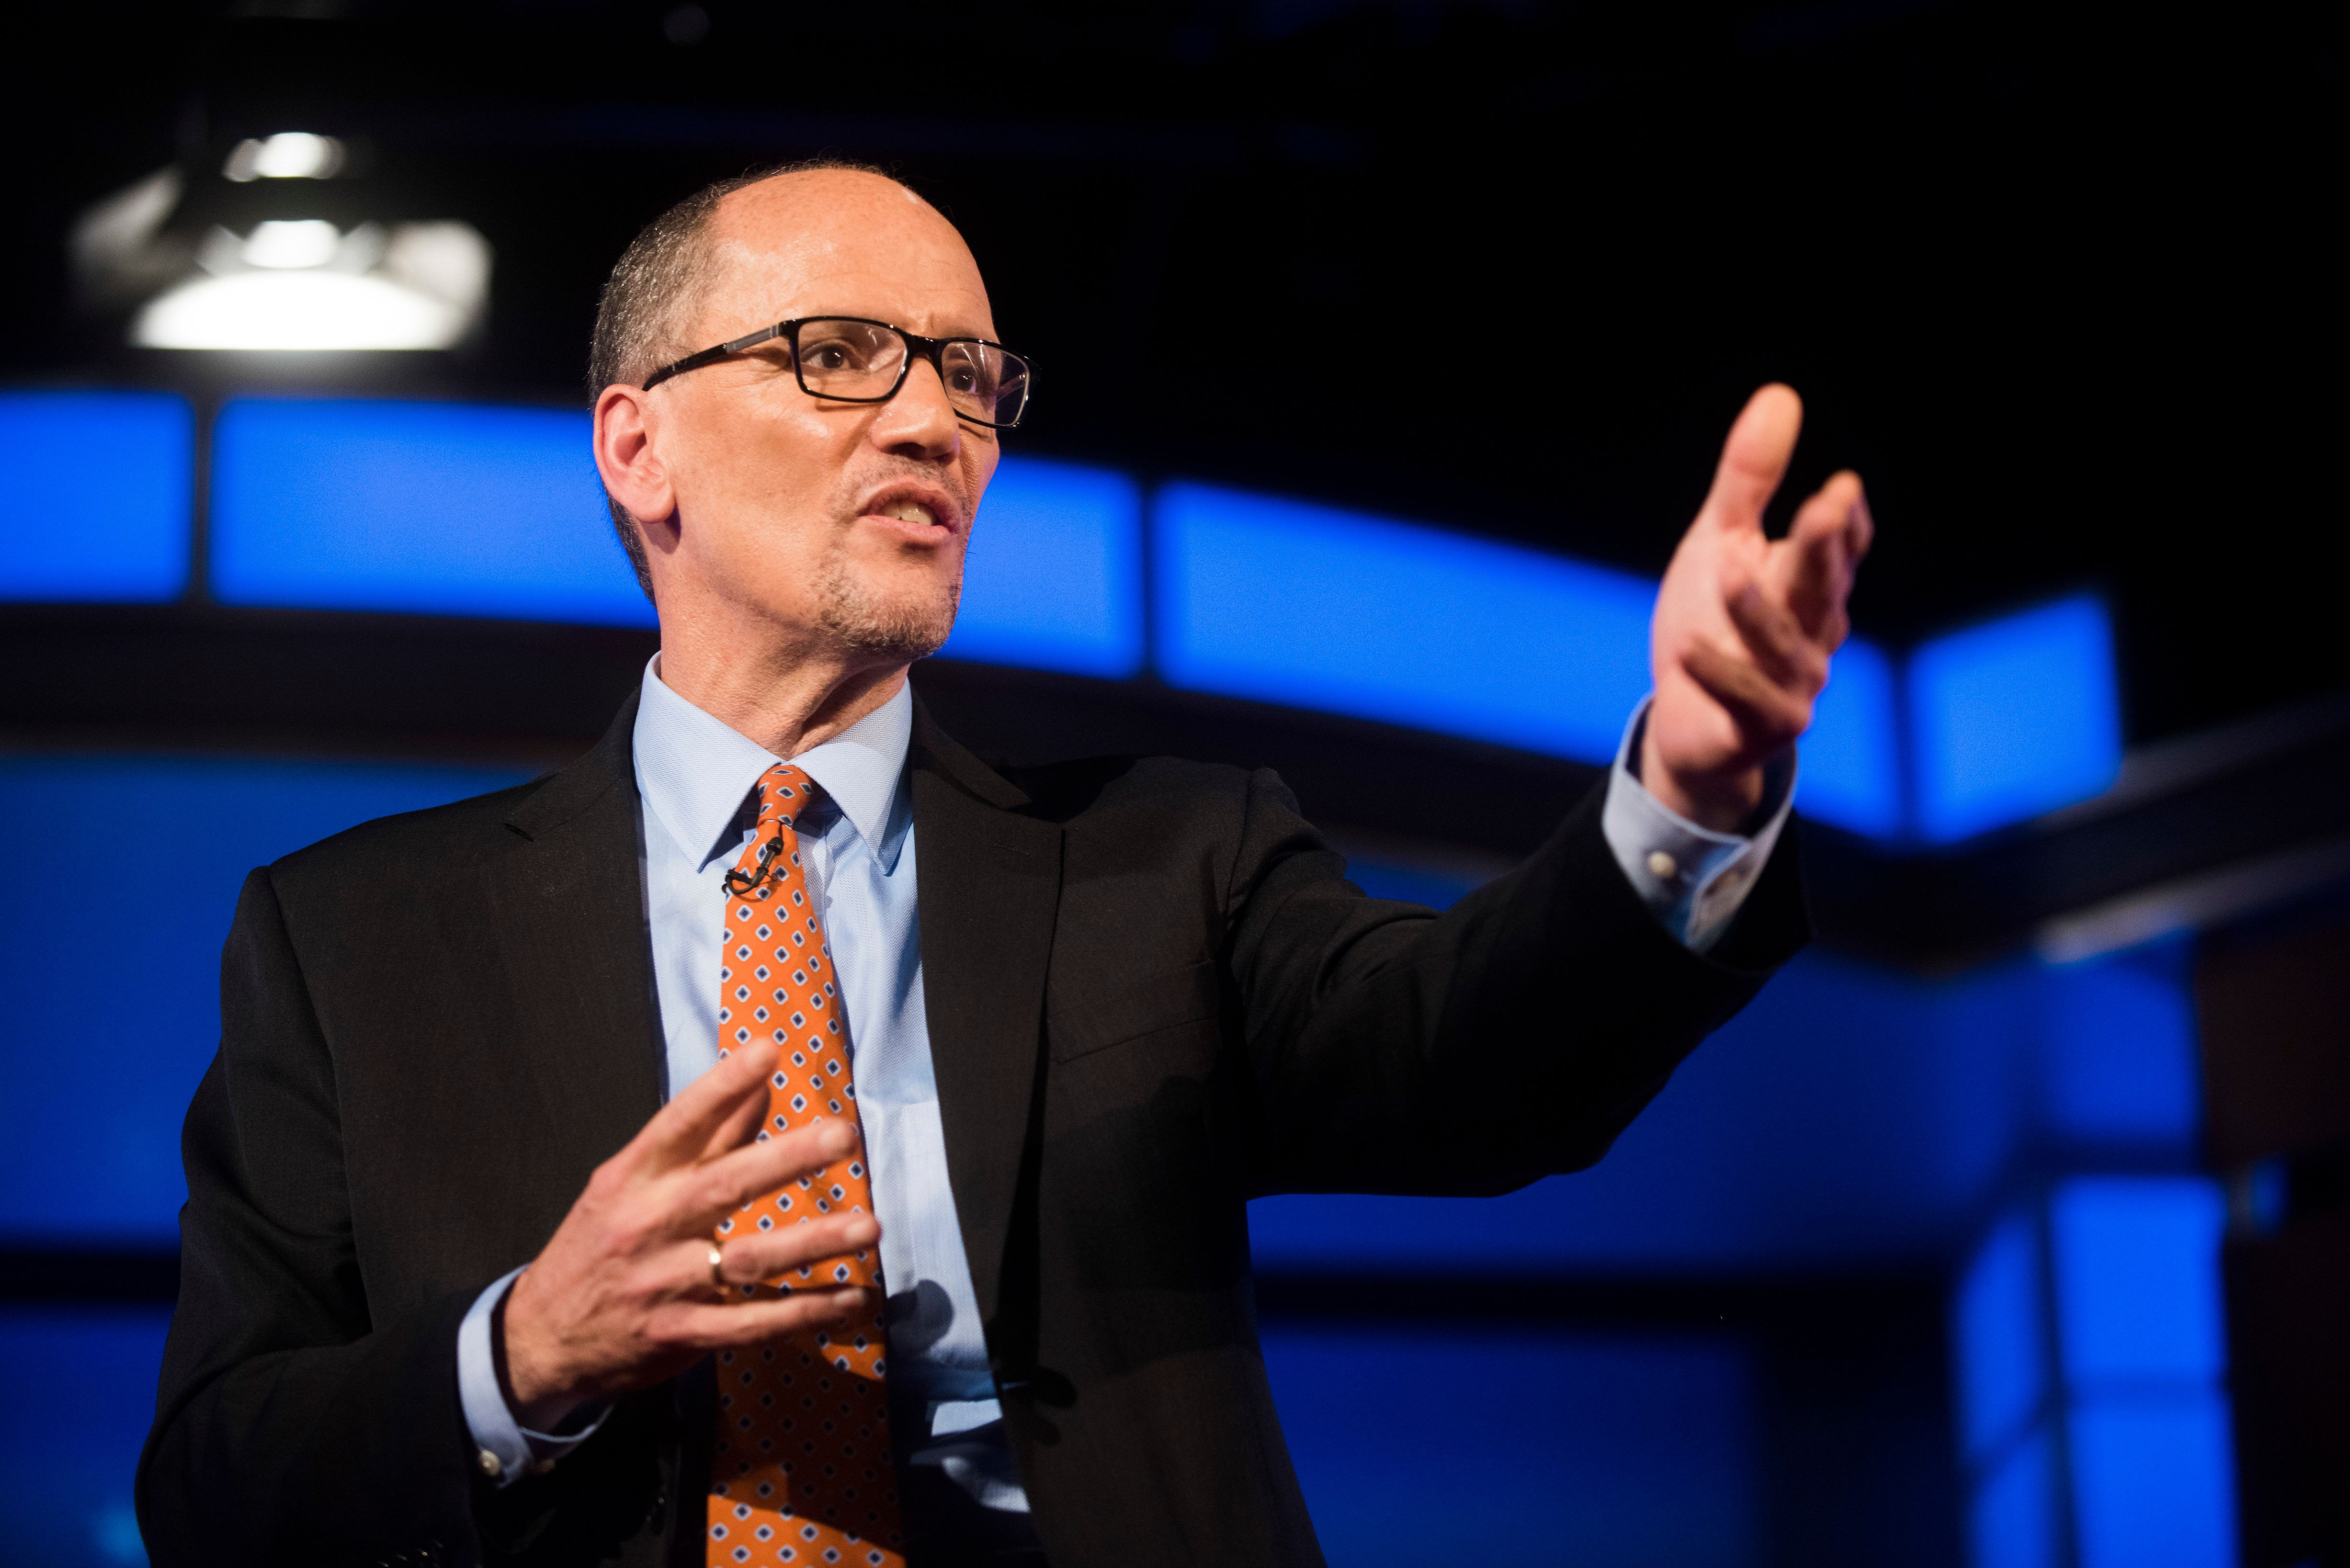 Tom Perez speaks during a debate for Democratic National Committee chair hosted by The Huffington Post at George Washington U